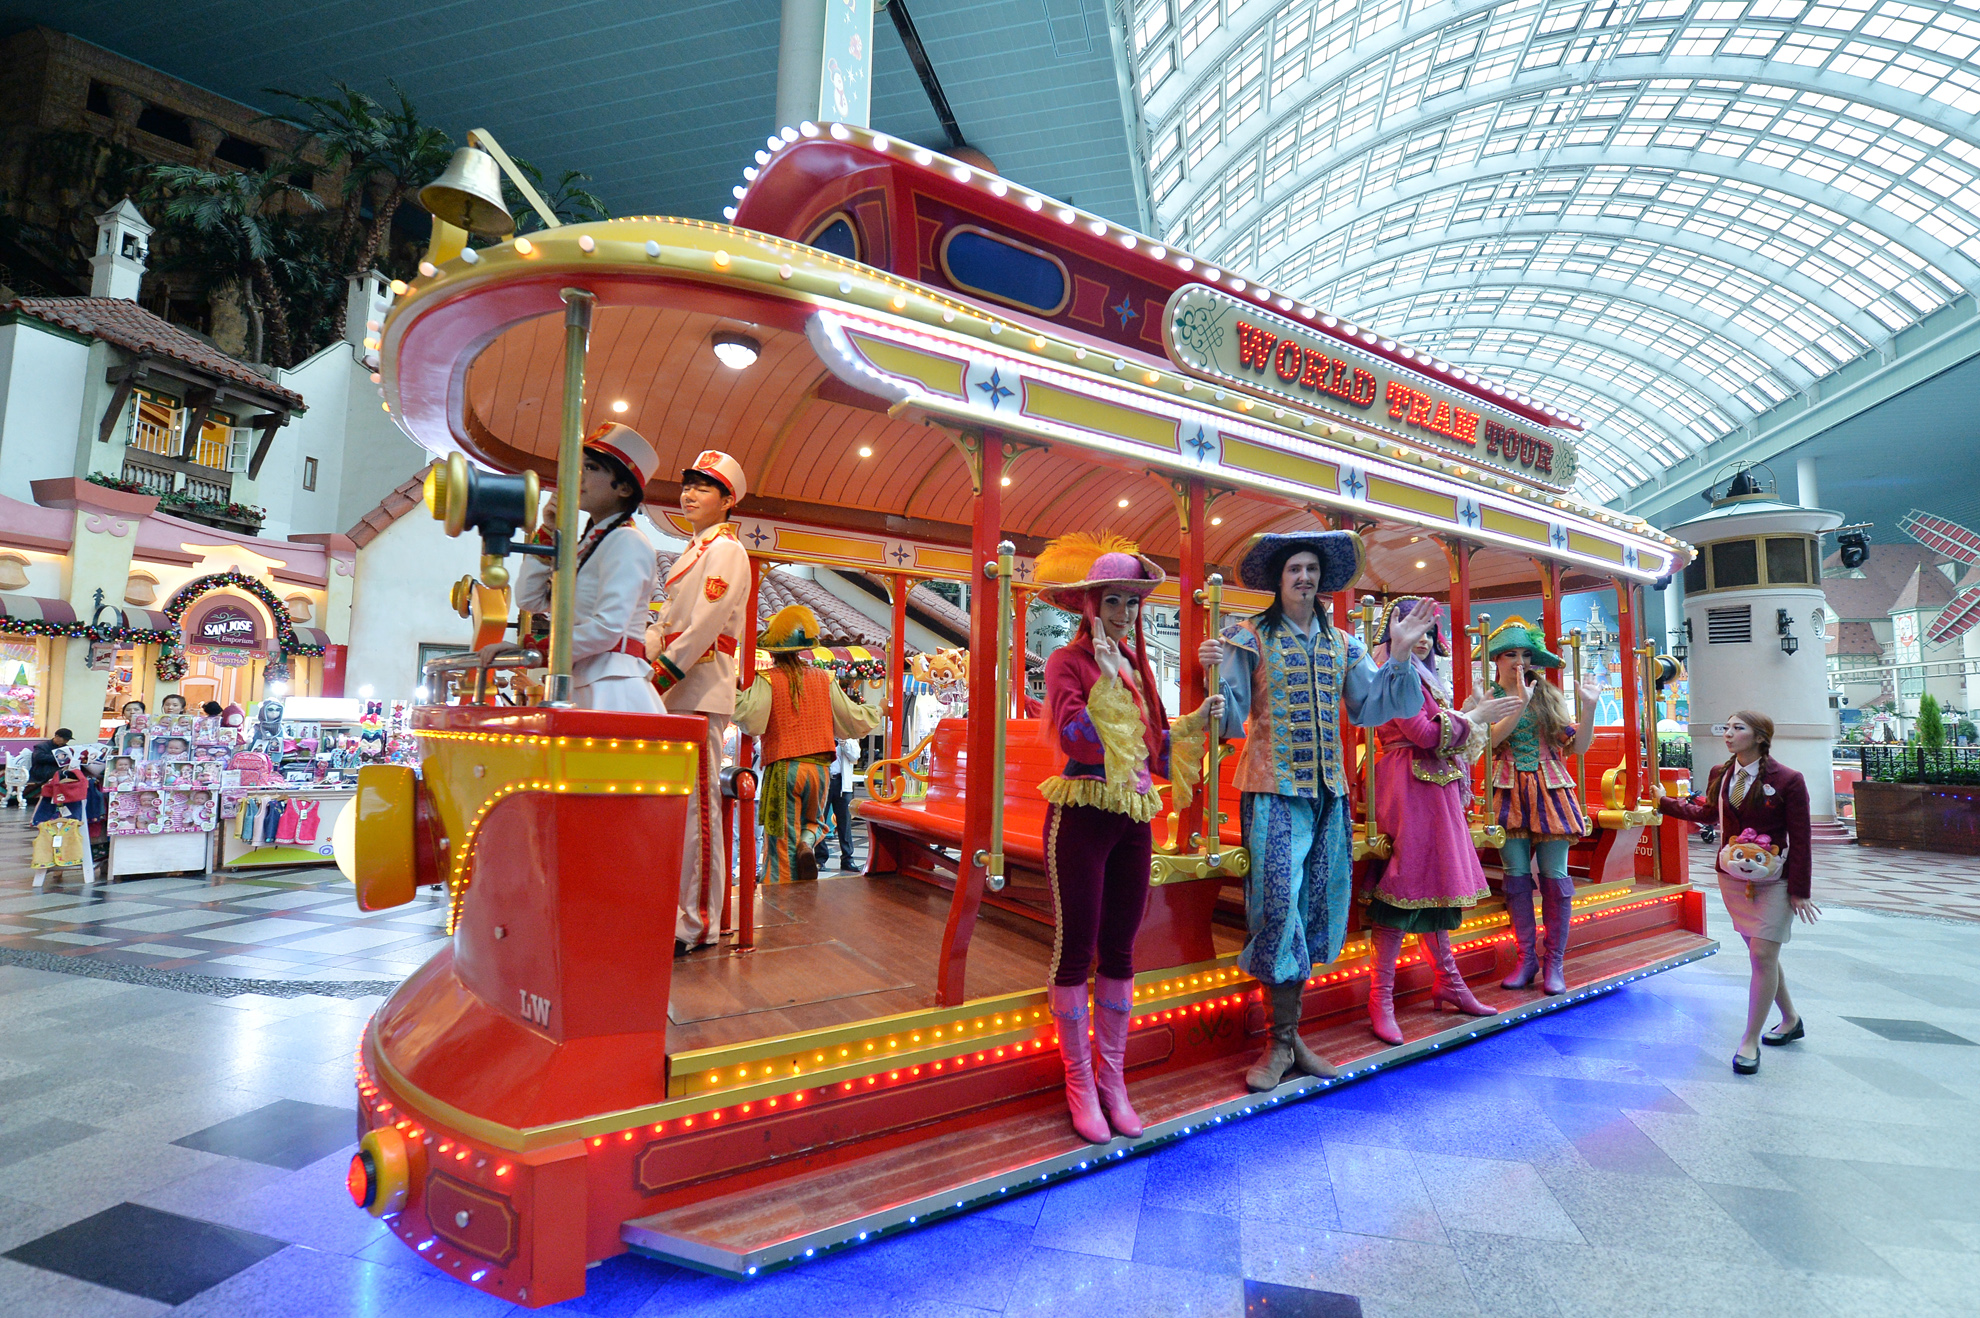 lotte-world-seoul-han-quoc-04